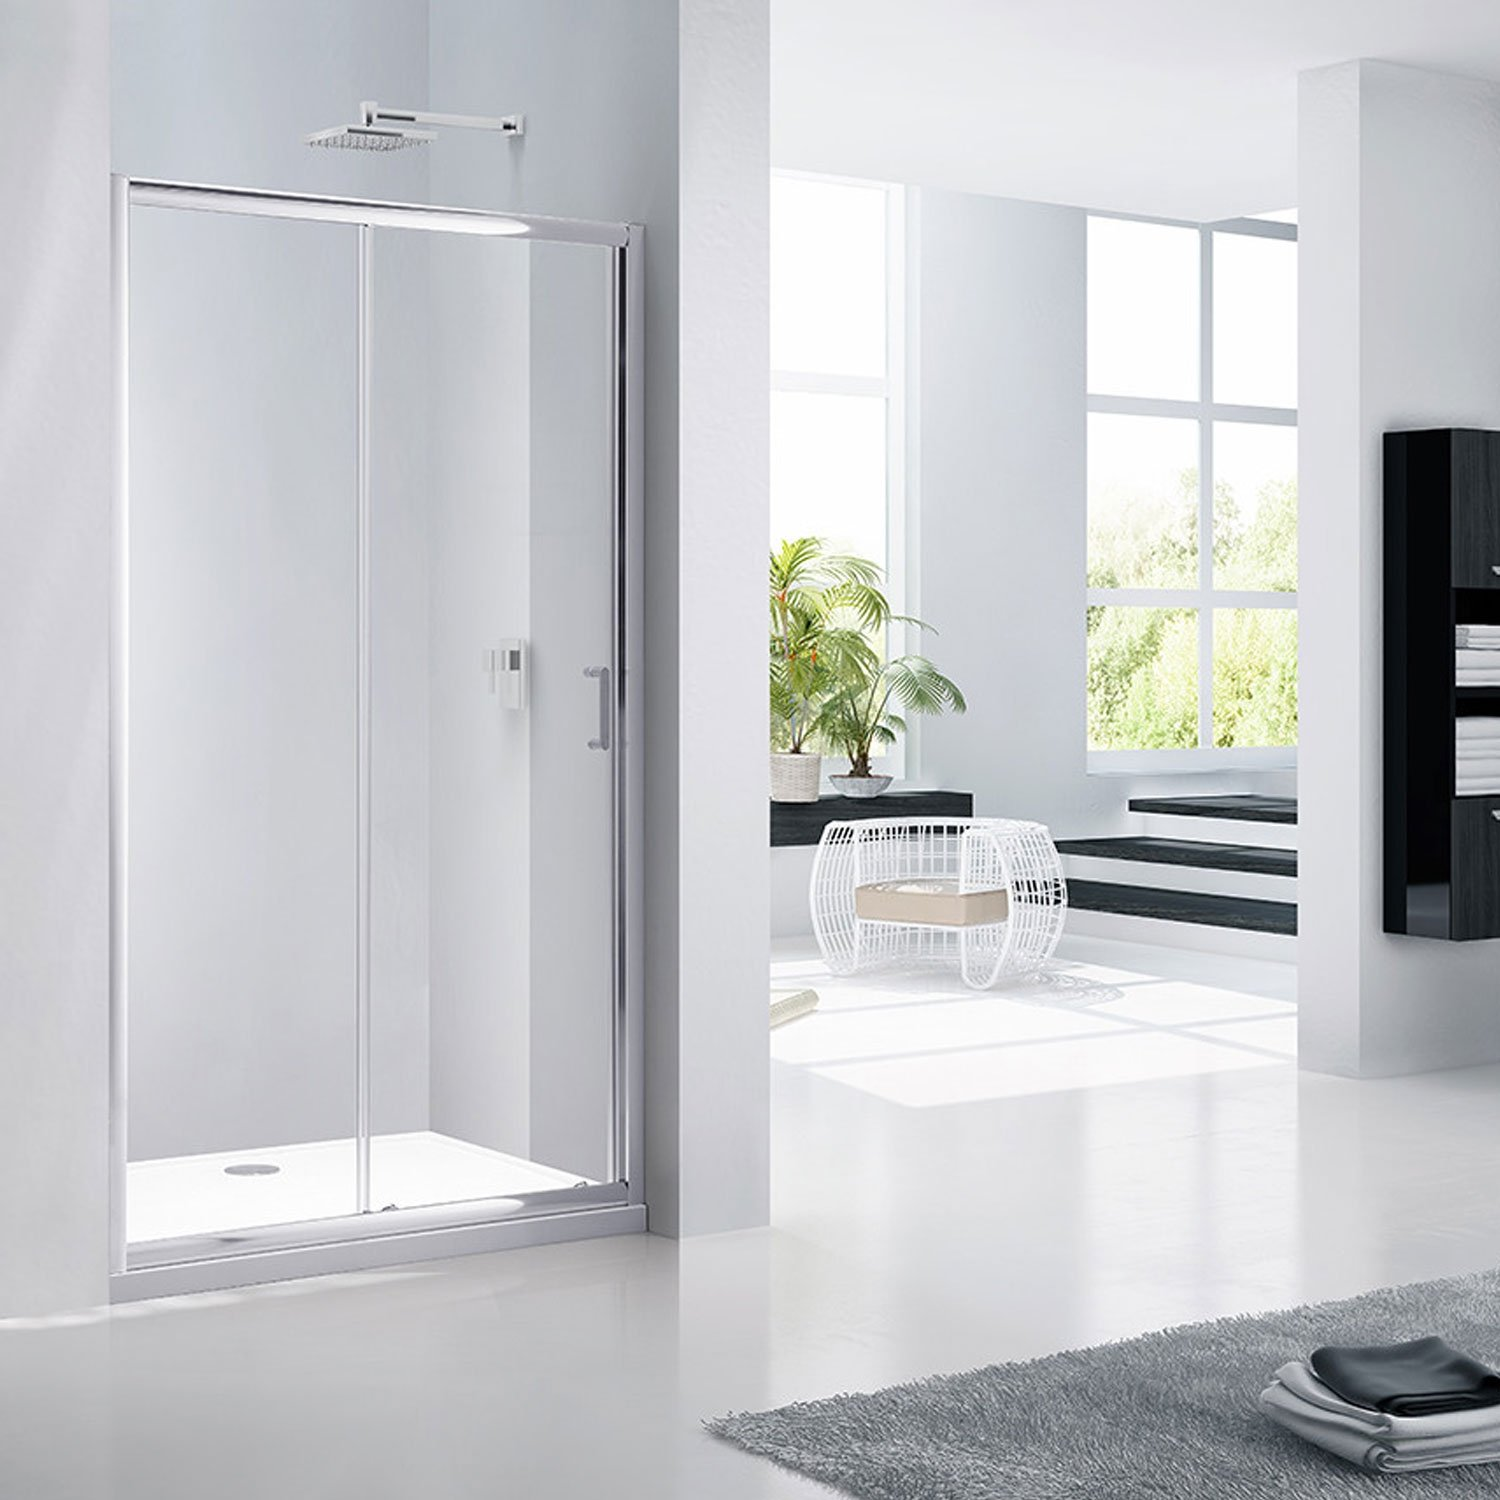 Verona Aquaglass Purity Sliding Shower Door 1200mm Wide - 6mm Glass-0